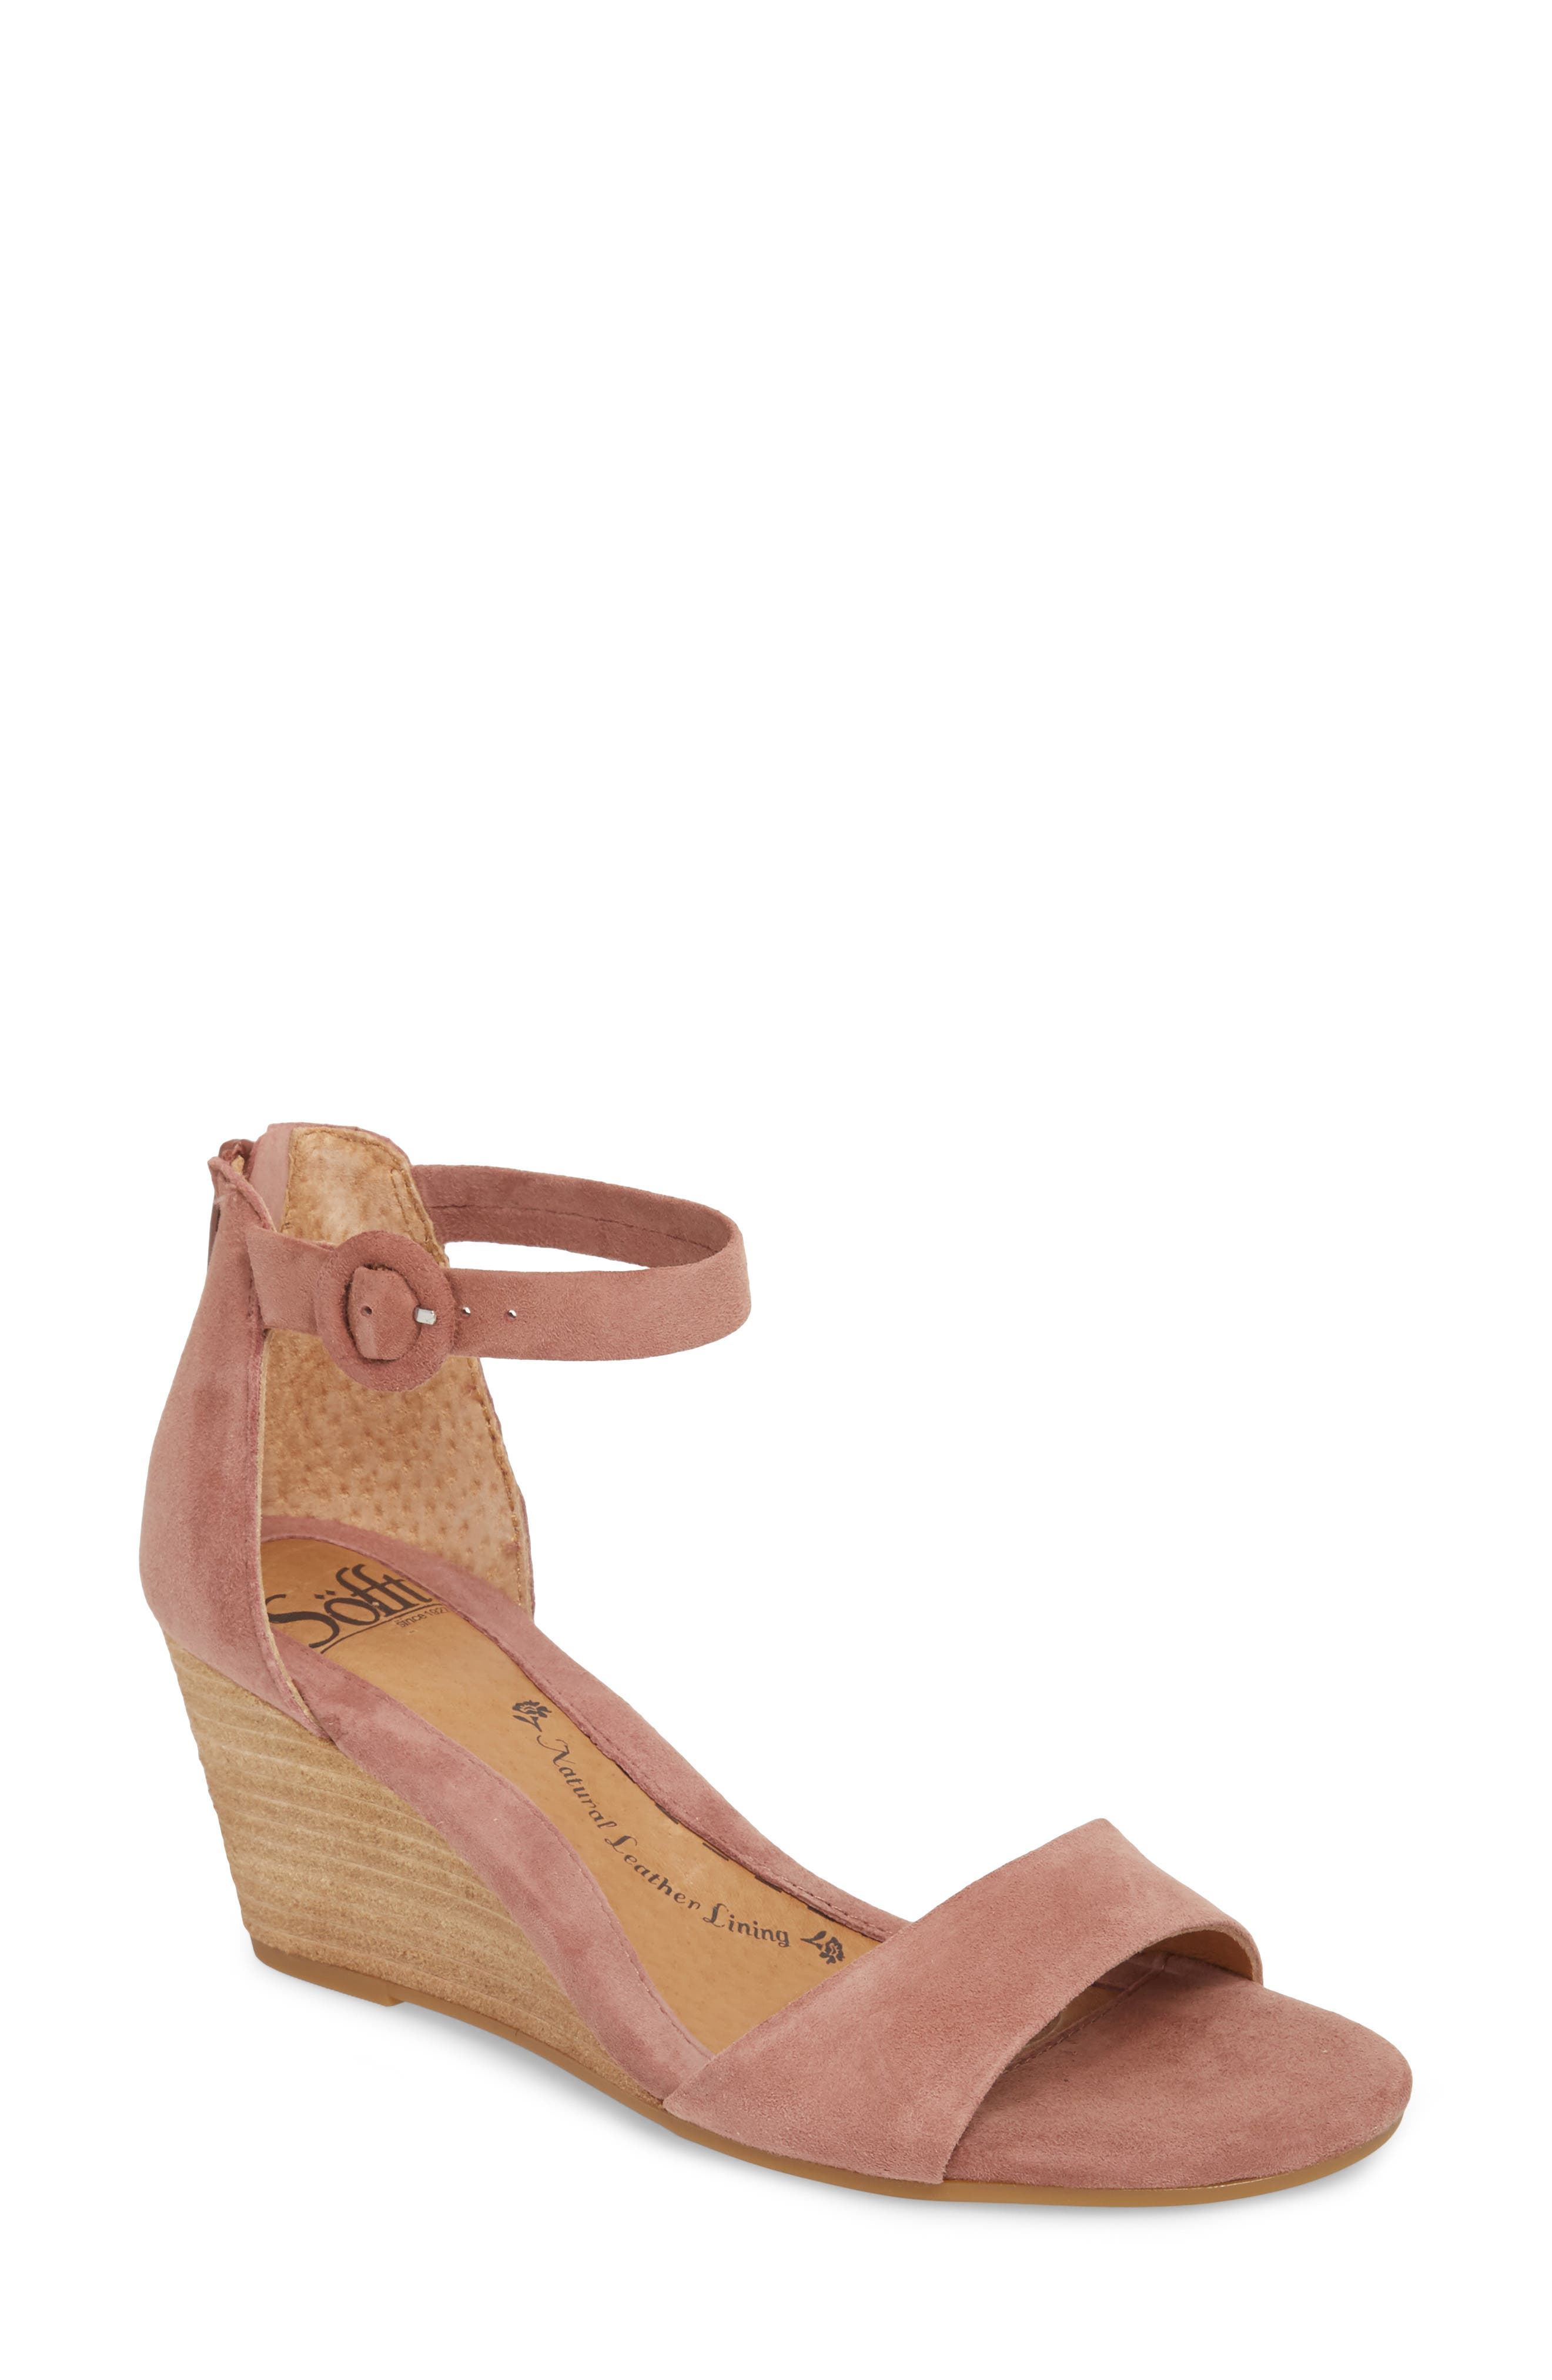 Marla Wedge Sandal,                             Main thumbnail 1, color,                             MULBERRY SUEDE